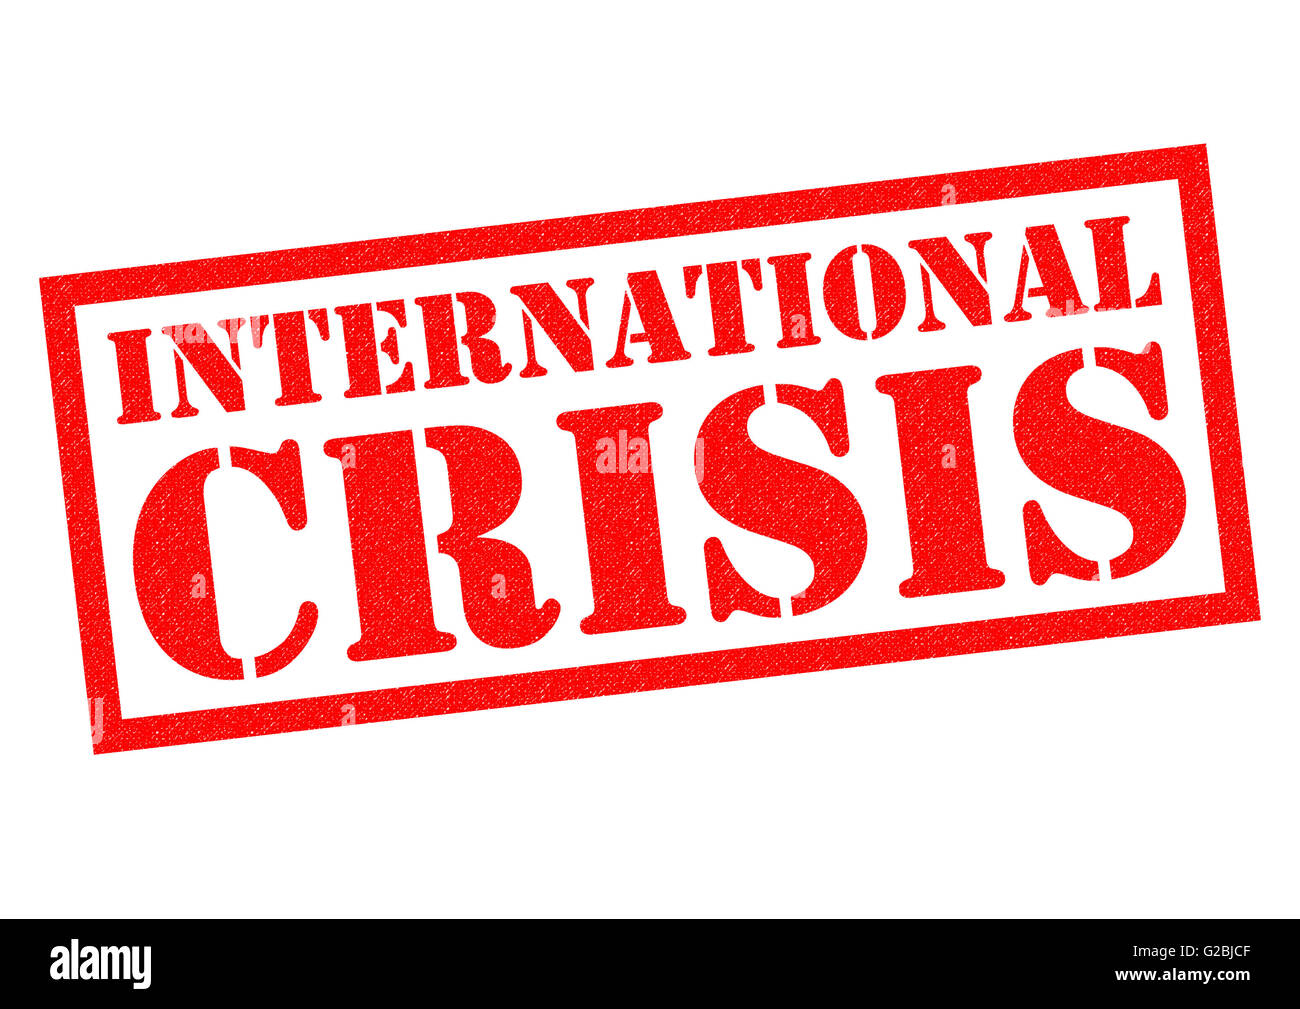 INTERNATIONAL CRISIS red Rubber Stamp over a white background. - Stock Image